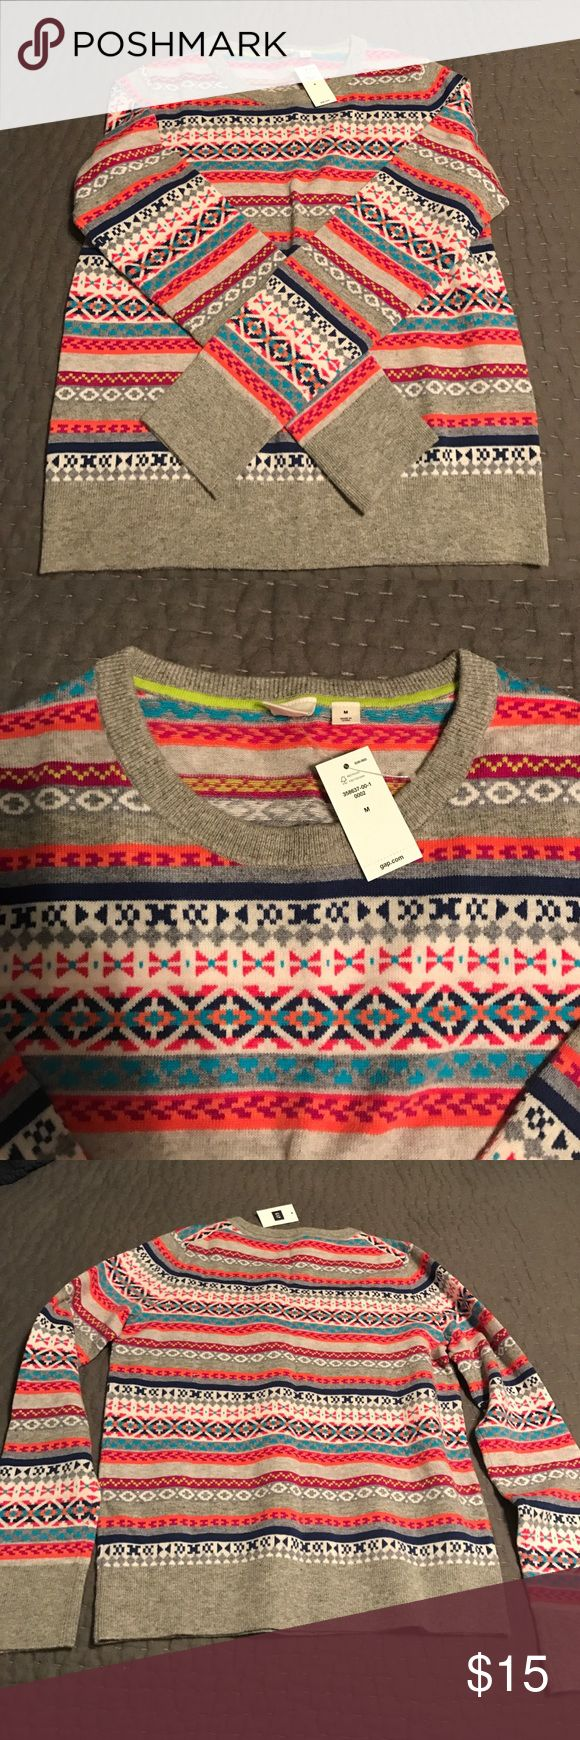 Gap Fair Isle Sweater Crazy Fair isle wool blend sweater! NWT Size M. Super cute!!! A must have for chilly weather ❤ GAP Sweaters Crew & Scoop Necks